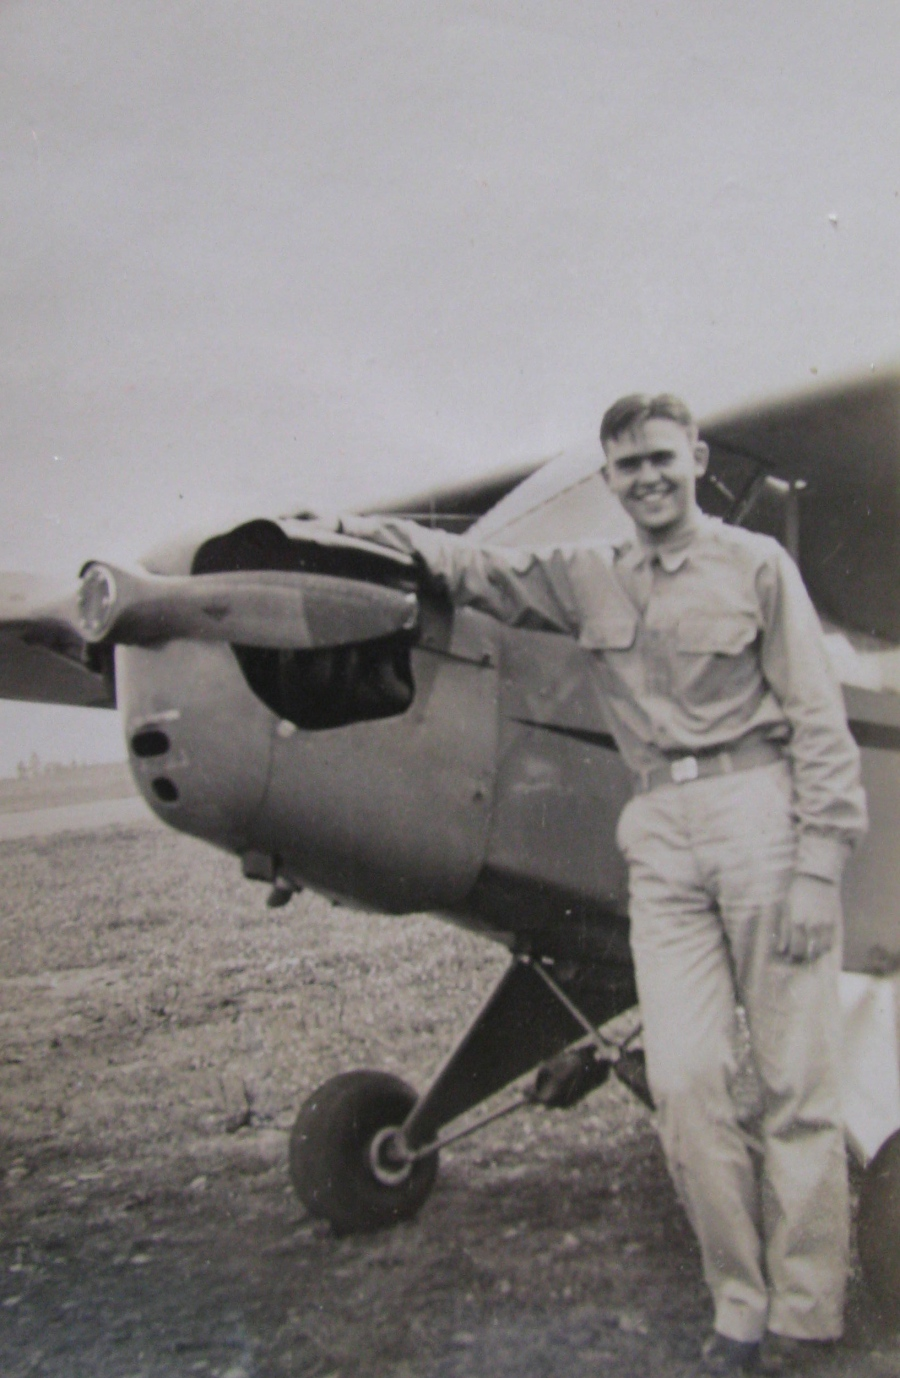 Cunningham is all smiles as he leans against a Piper Cub he soloed in during early flight training in the snow at Siena College in New York during the winter of 1942. Photo provided